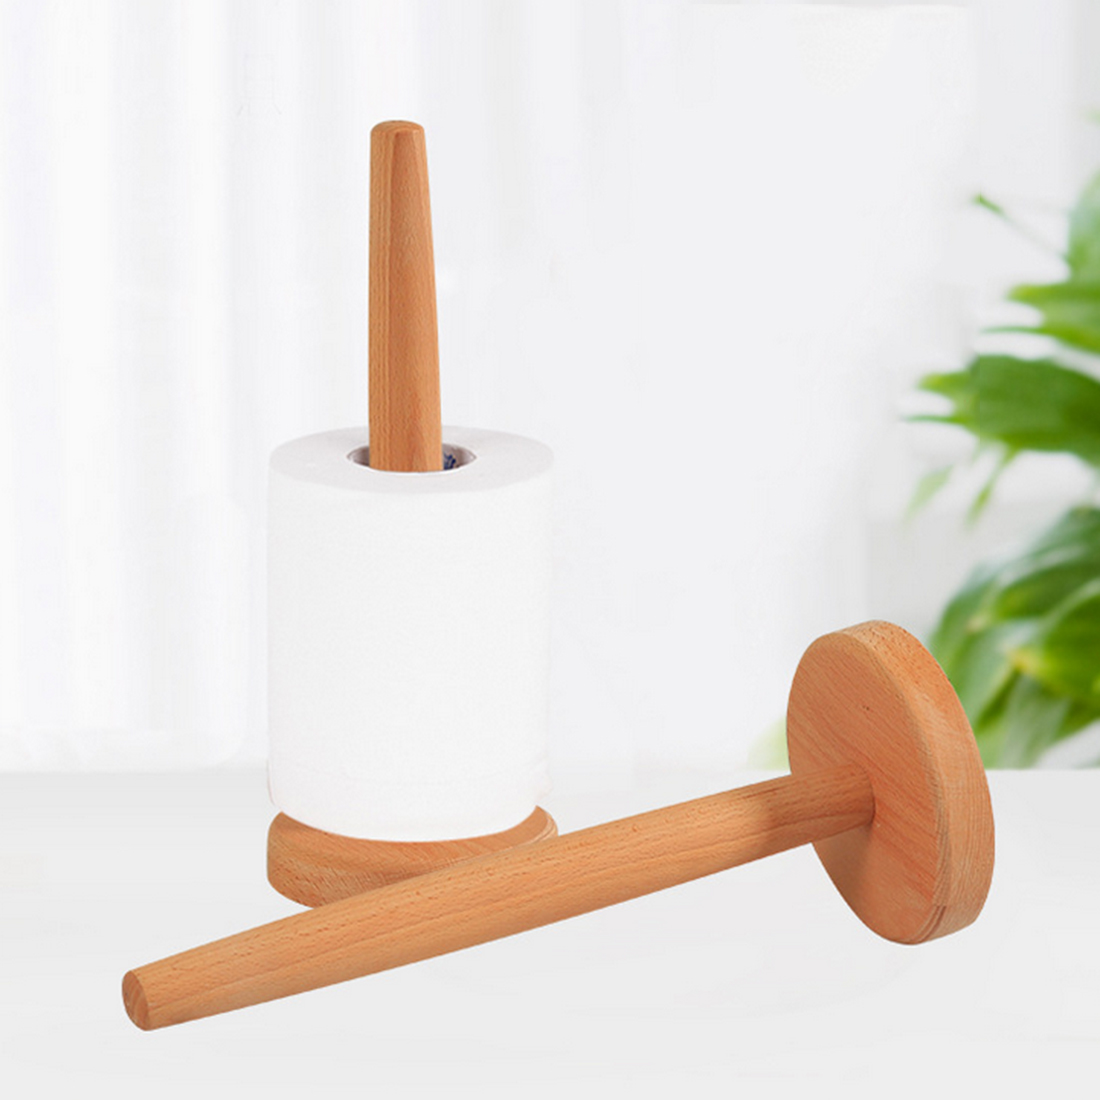 Beech Wooden Vertical Stand Roll Paper Stand Holder Kitchen Paper Towel Toilet Tissue Holder Household Kitchen Tool